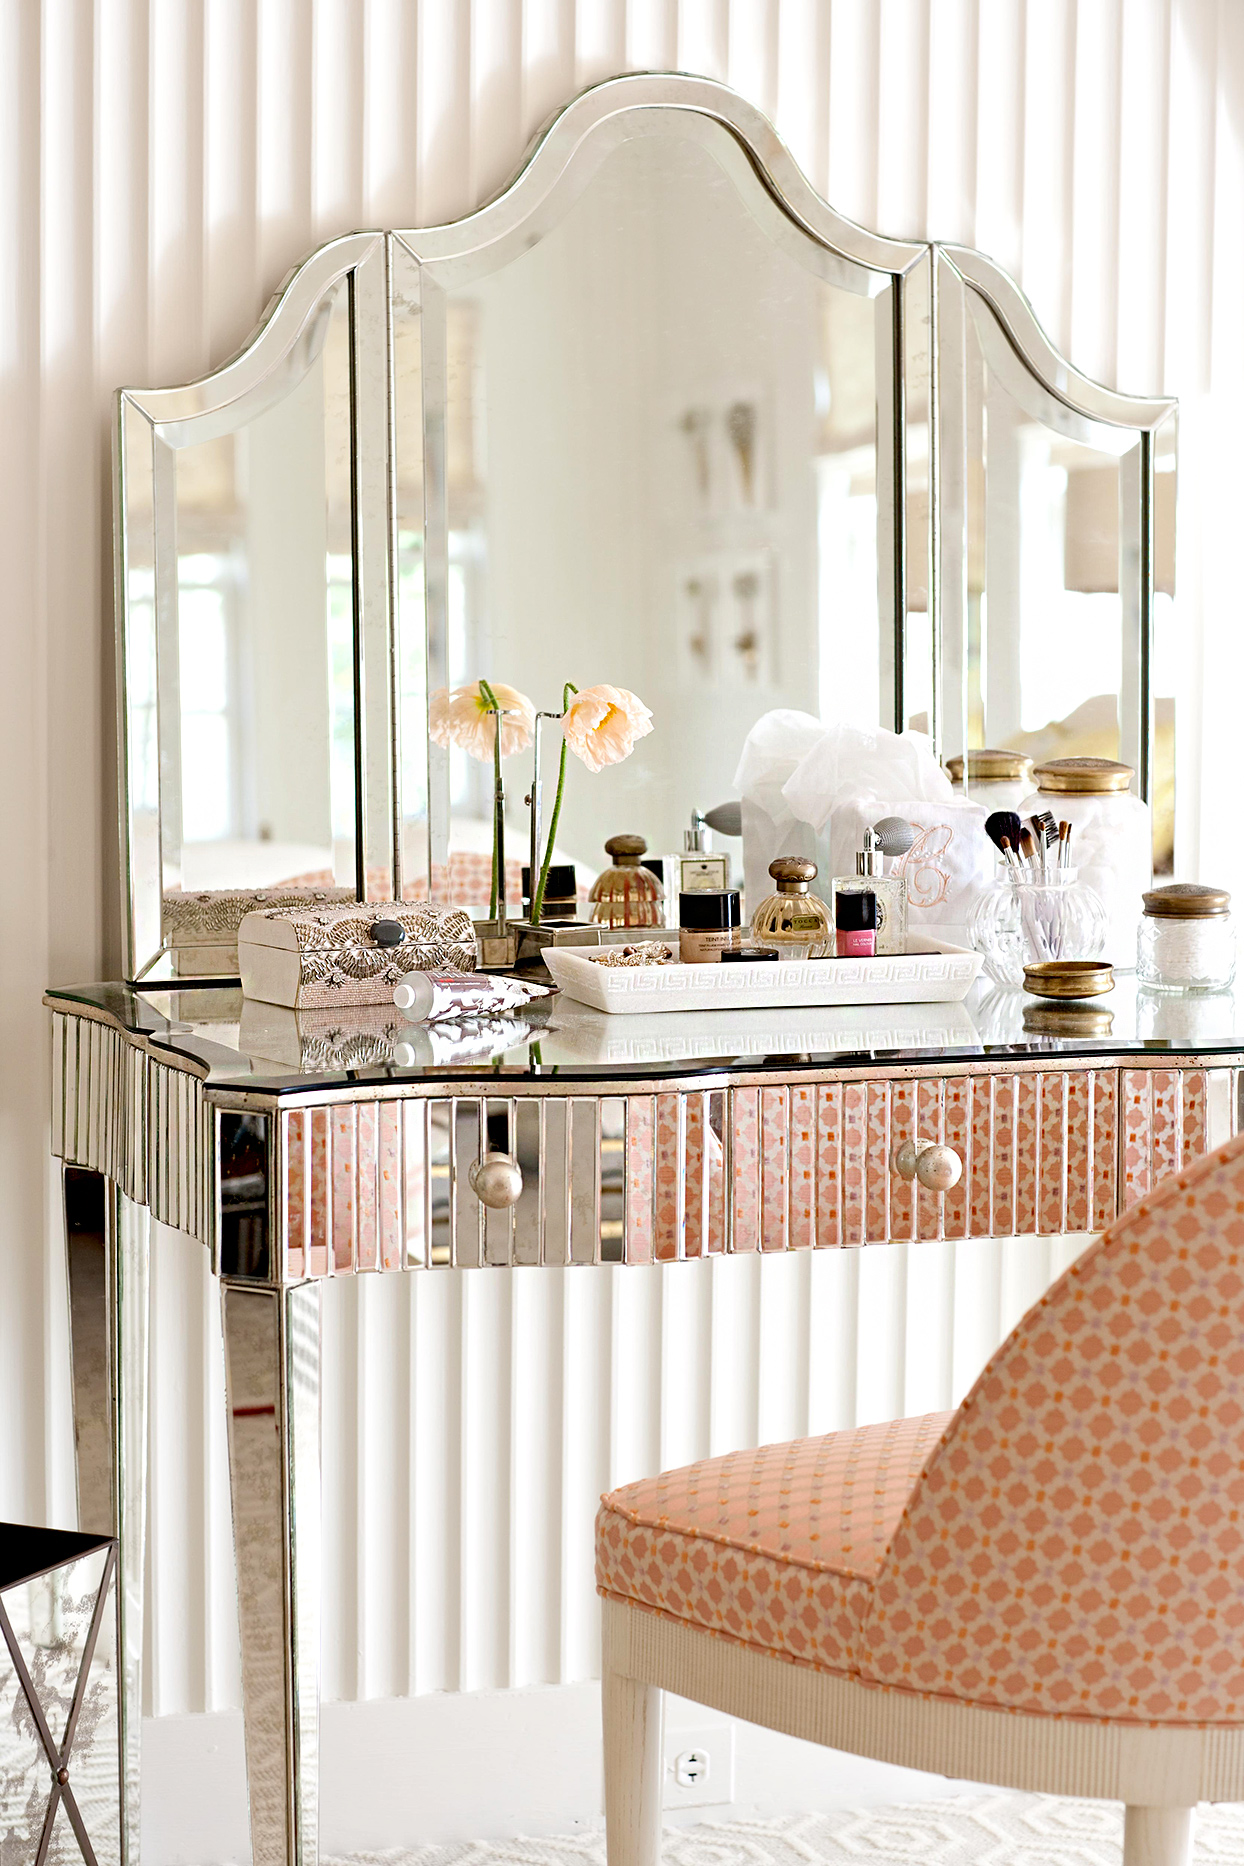 Vanity with pink accents and chair